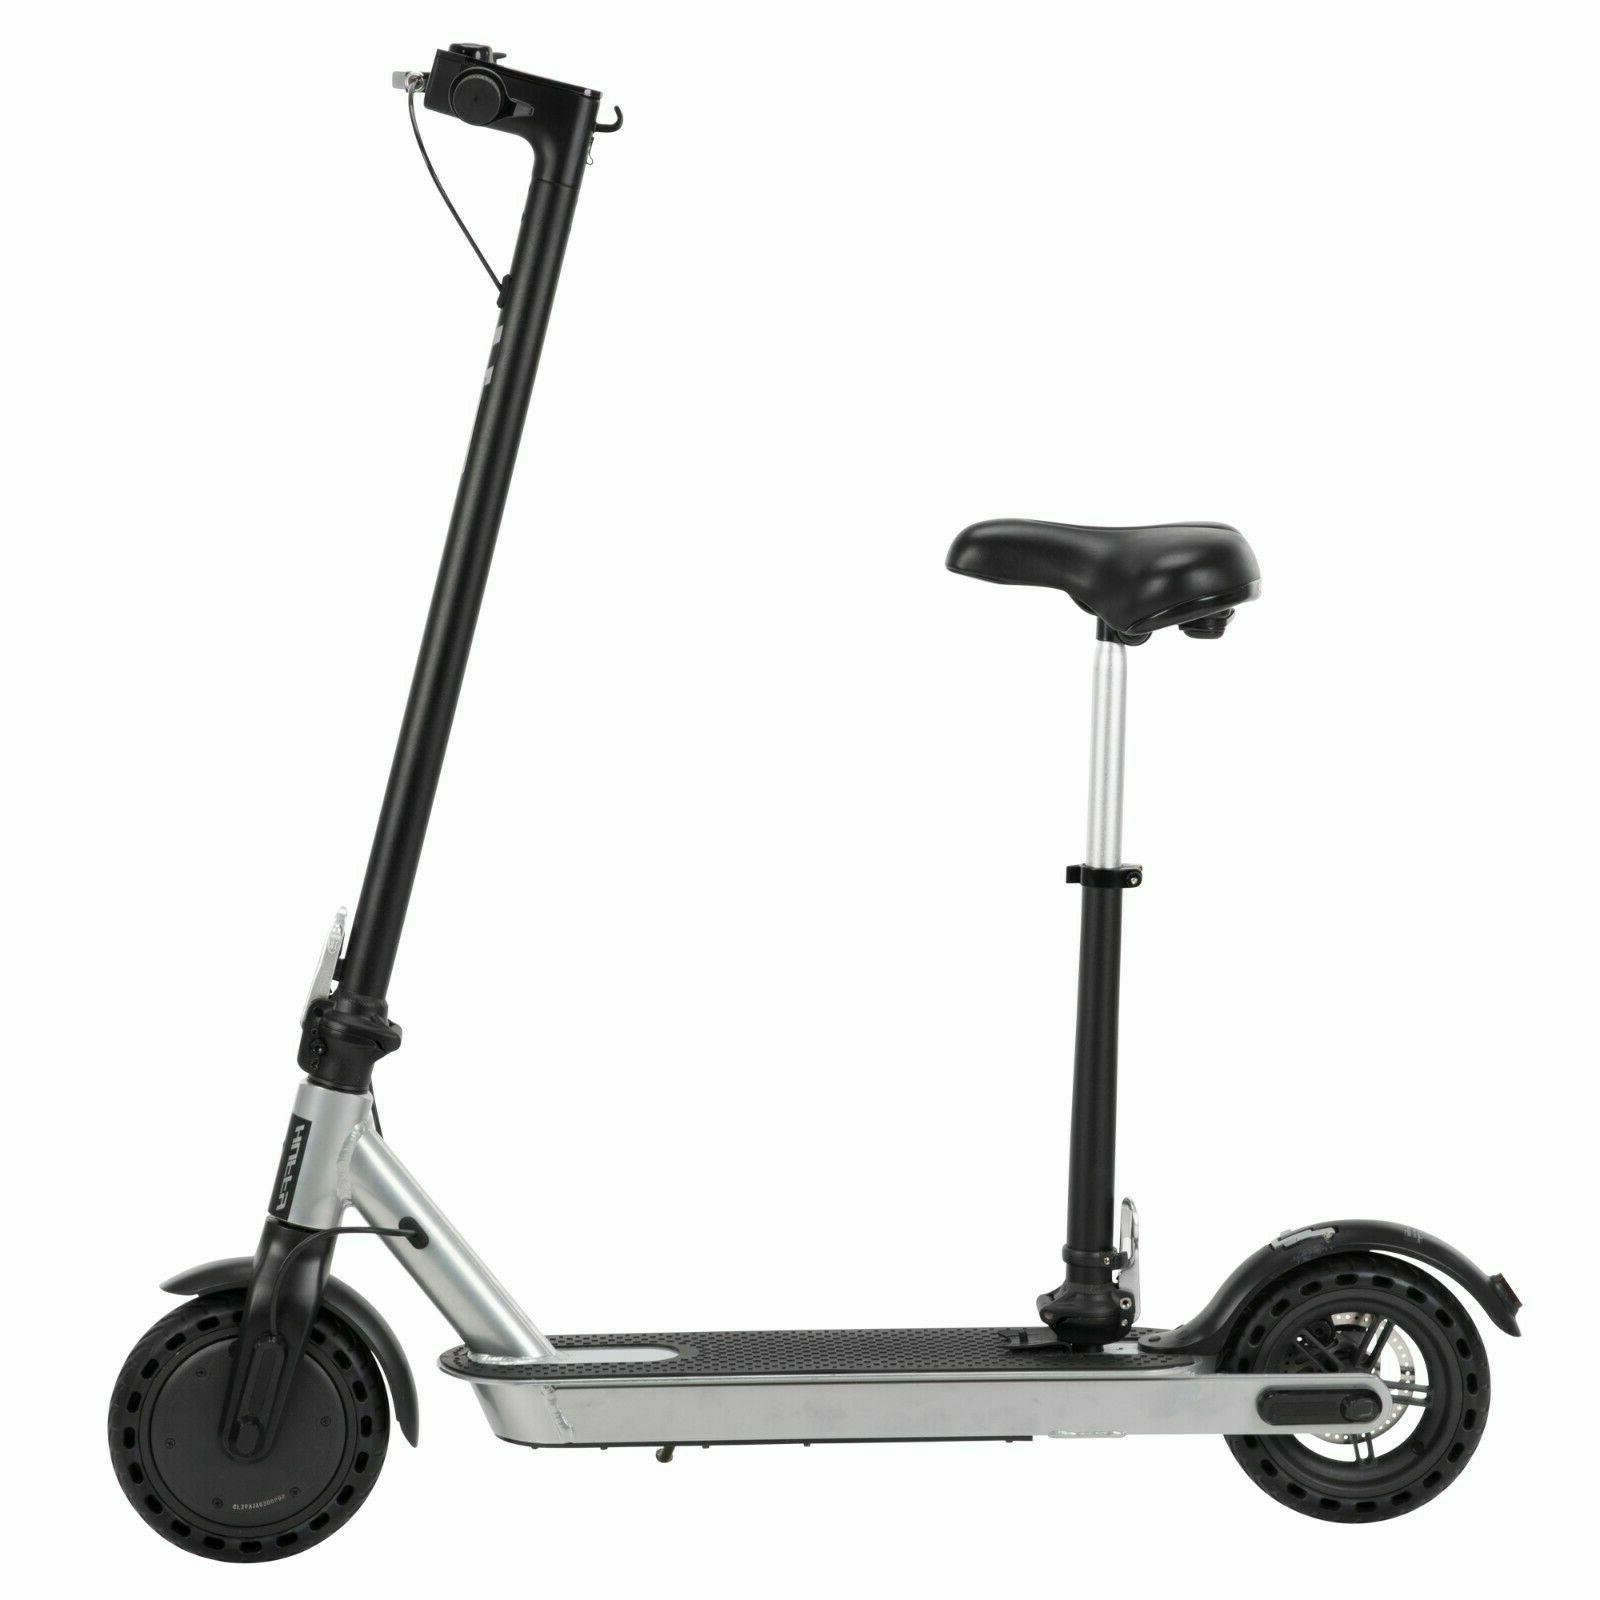 36v folding electric scooter 250w motor includes